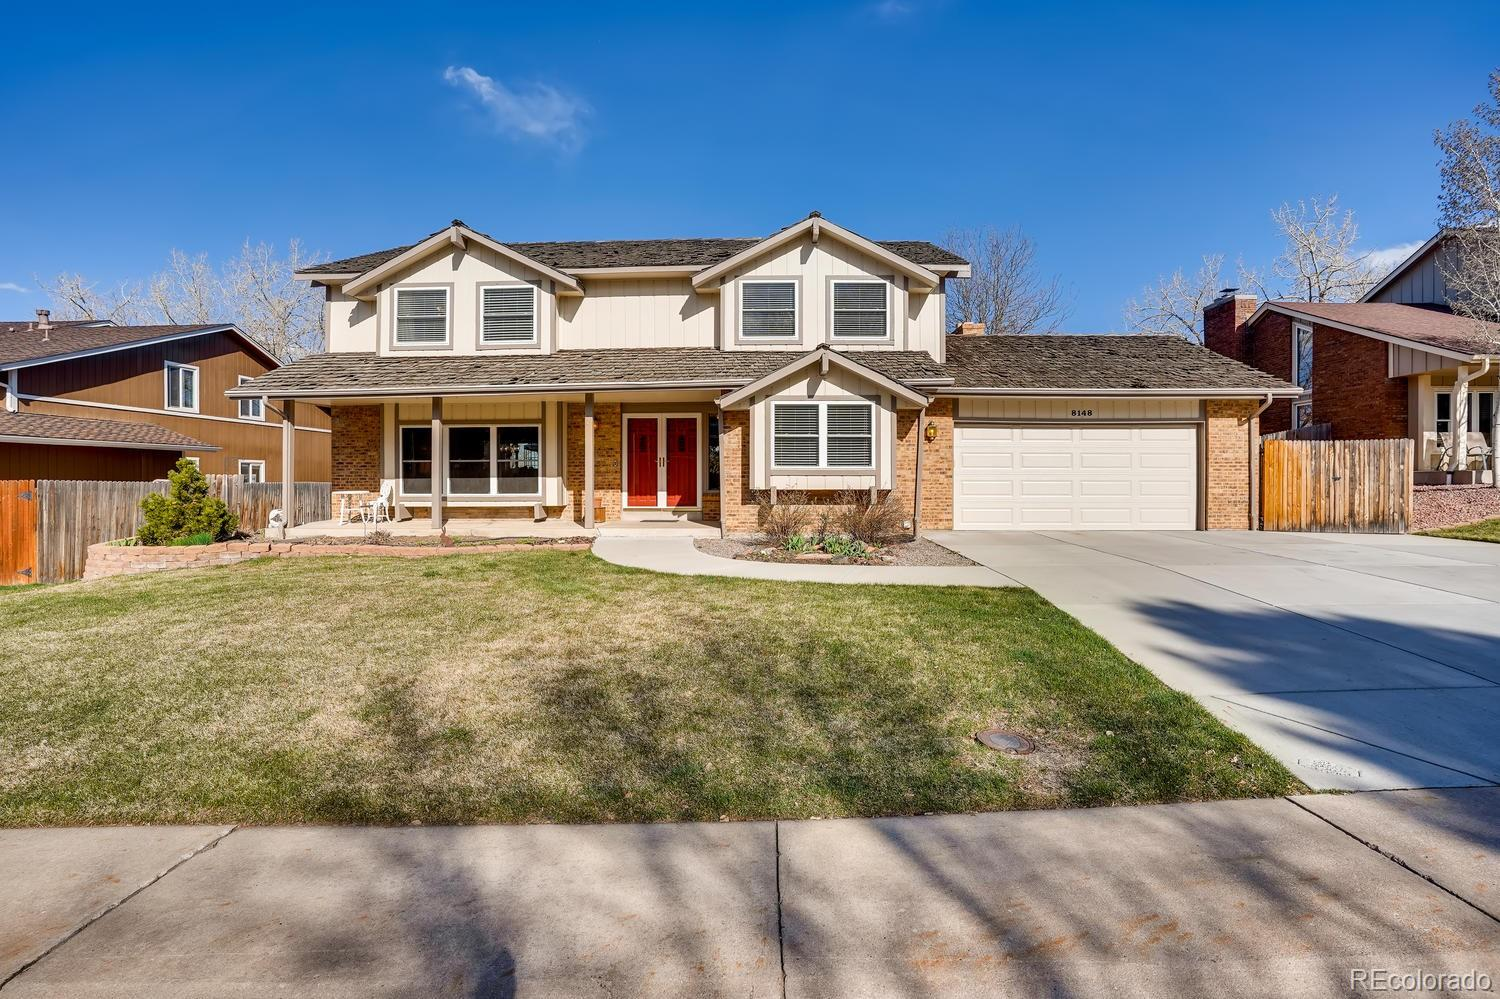 8148 S Yukon Street Property Photo - Littleton, CO real estate listing